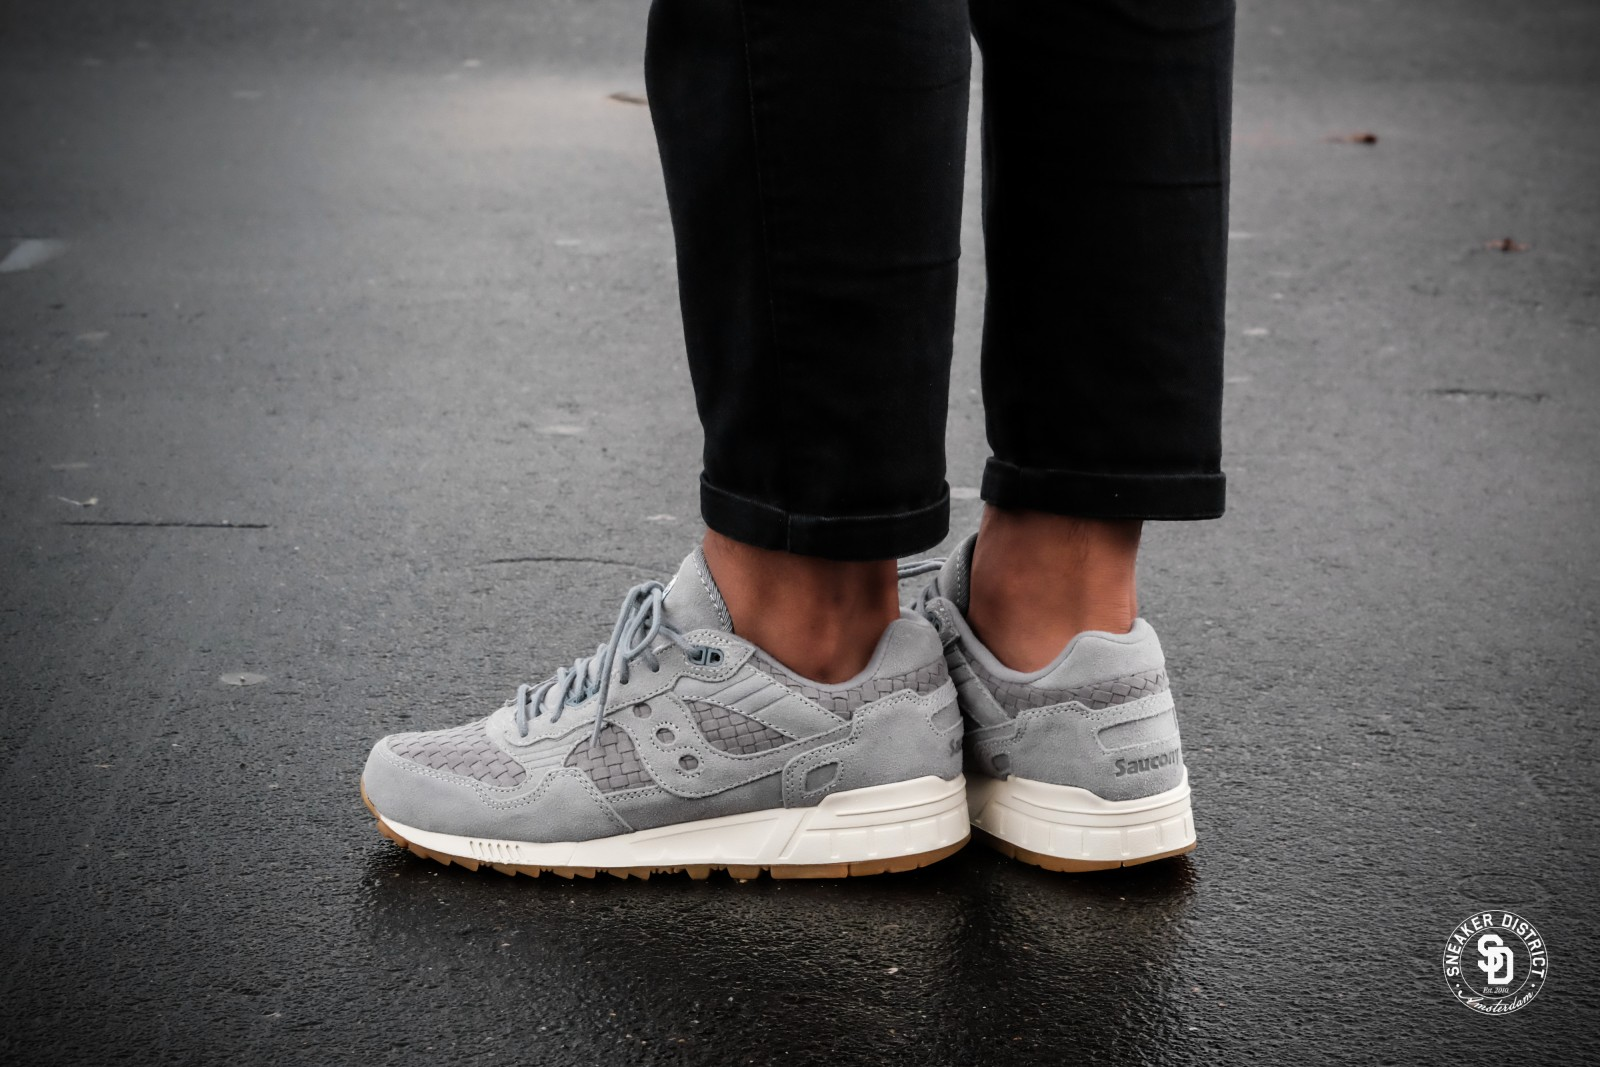 saucony shadow 5000 ht weave pack